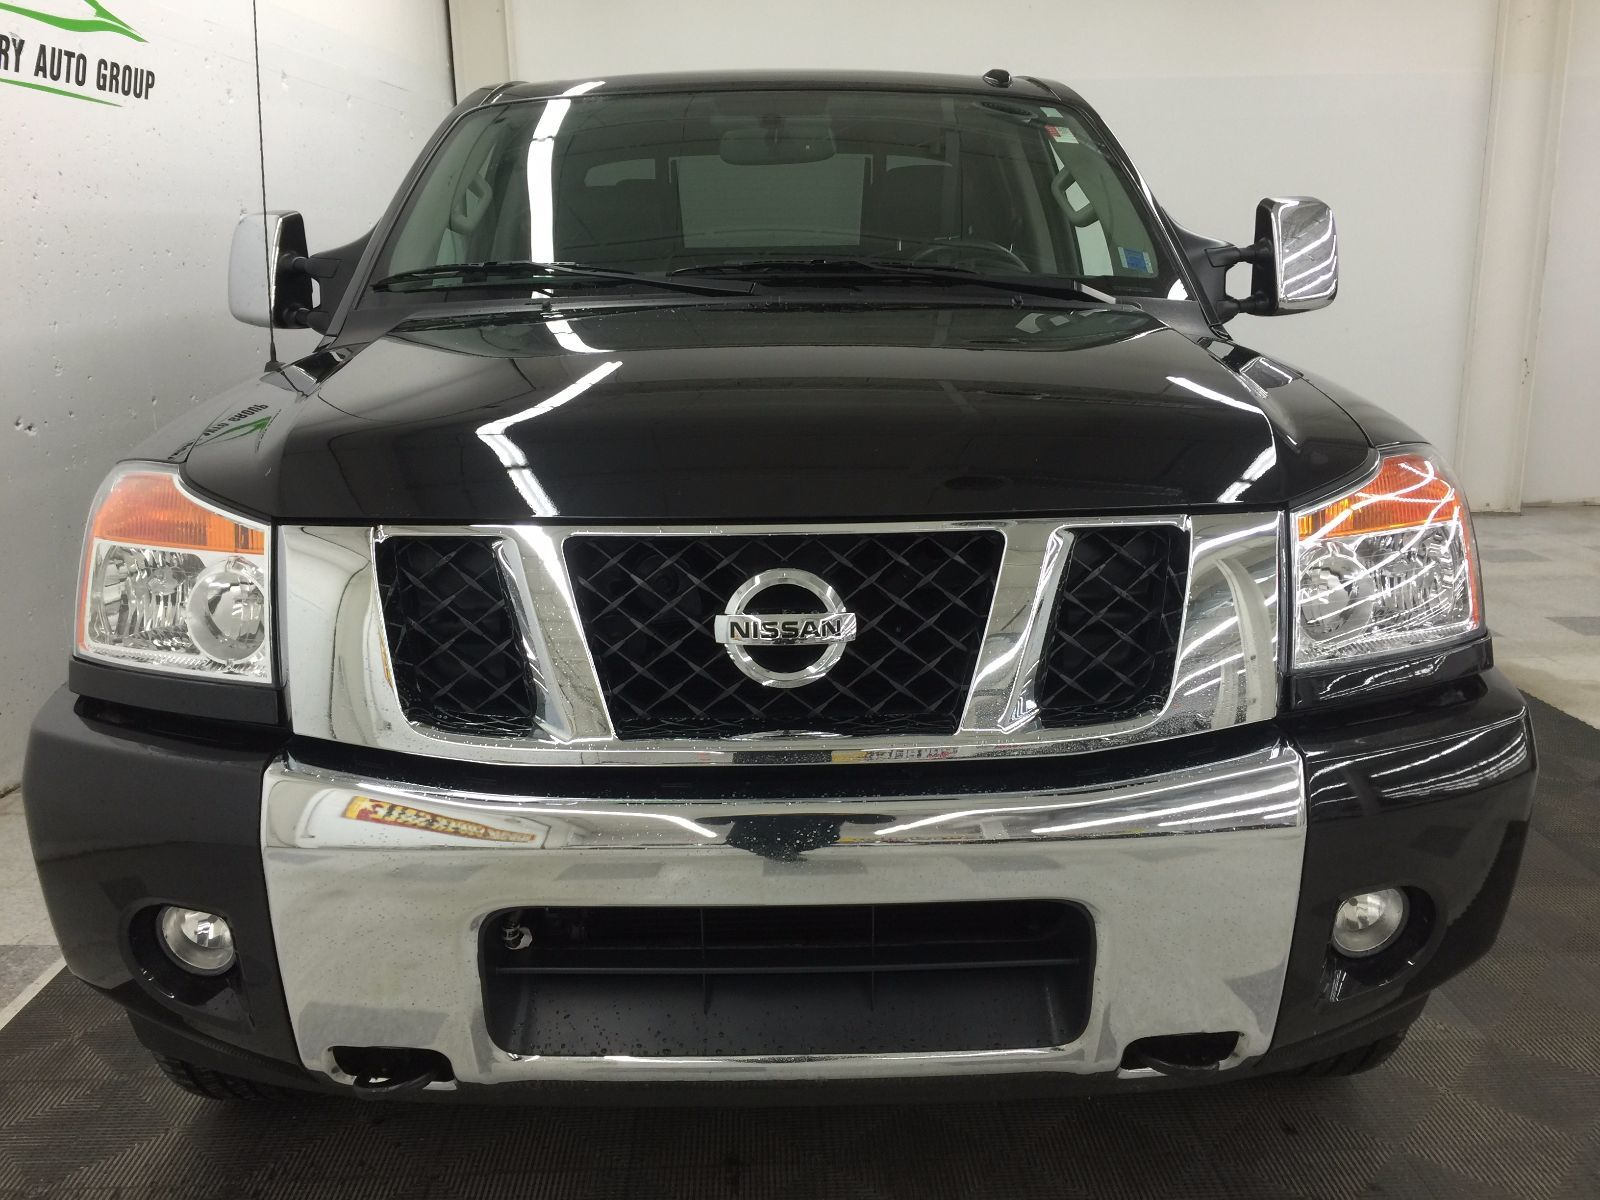 used 2014 nissan titan sl in berwick used inventory berwick used car centre in berwick nova. Black Bedroom Furniture Sets. Home Design Ideas